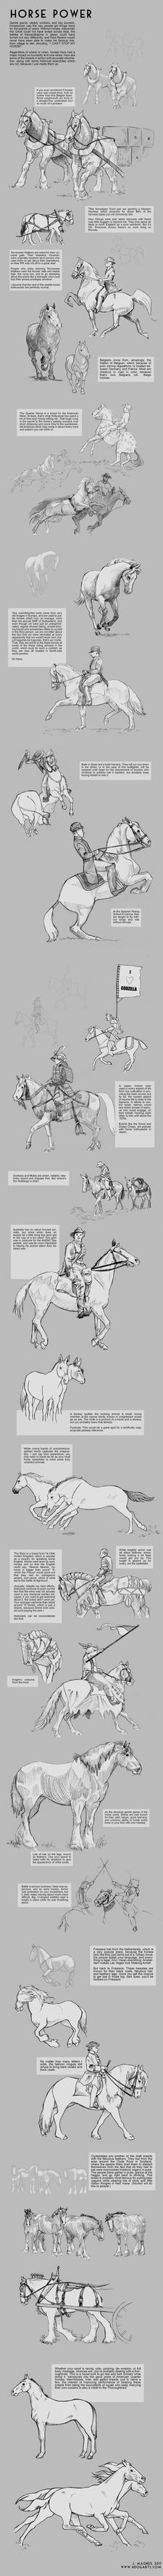 Horse Power Tutorial by sketcherjak